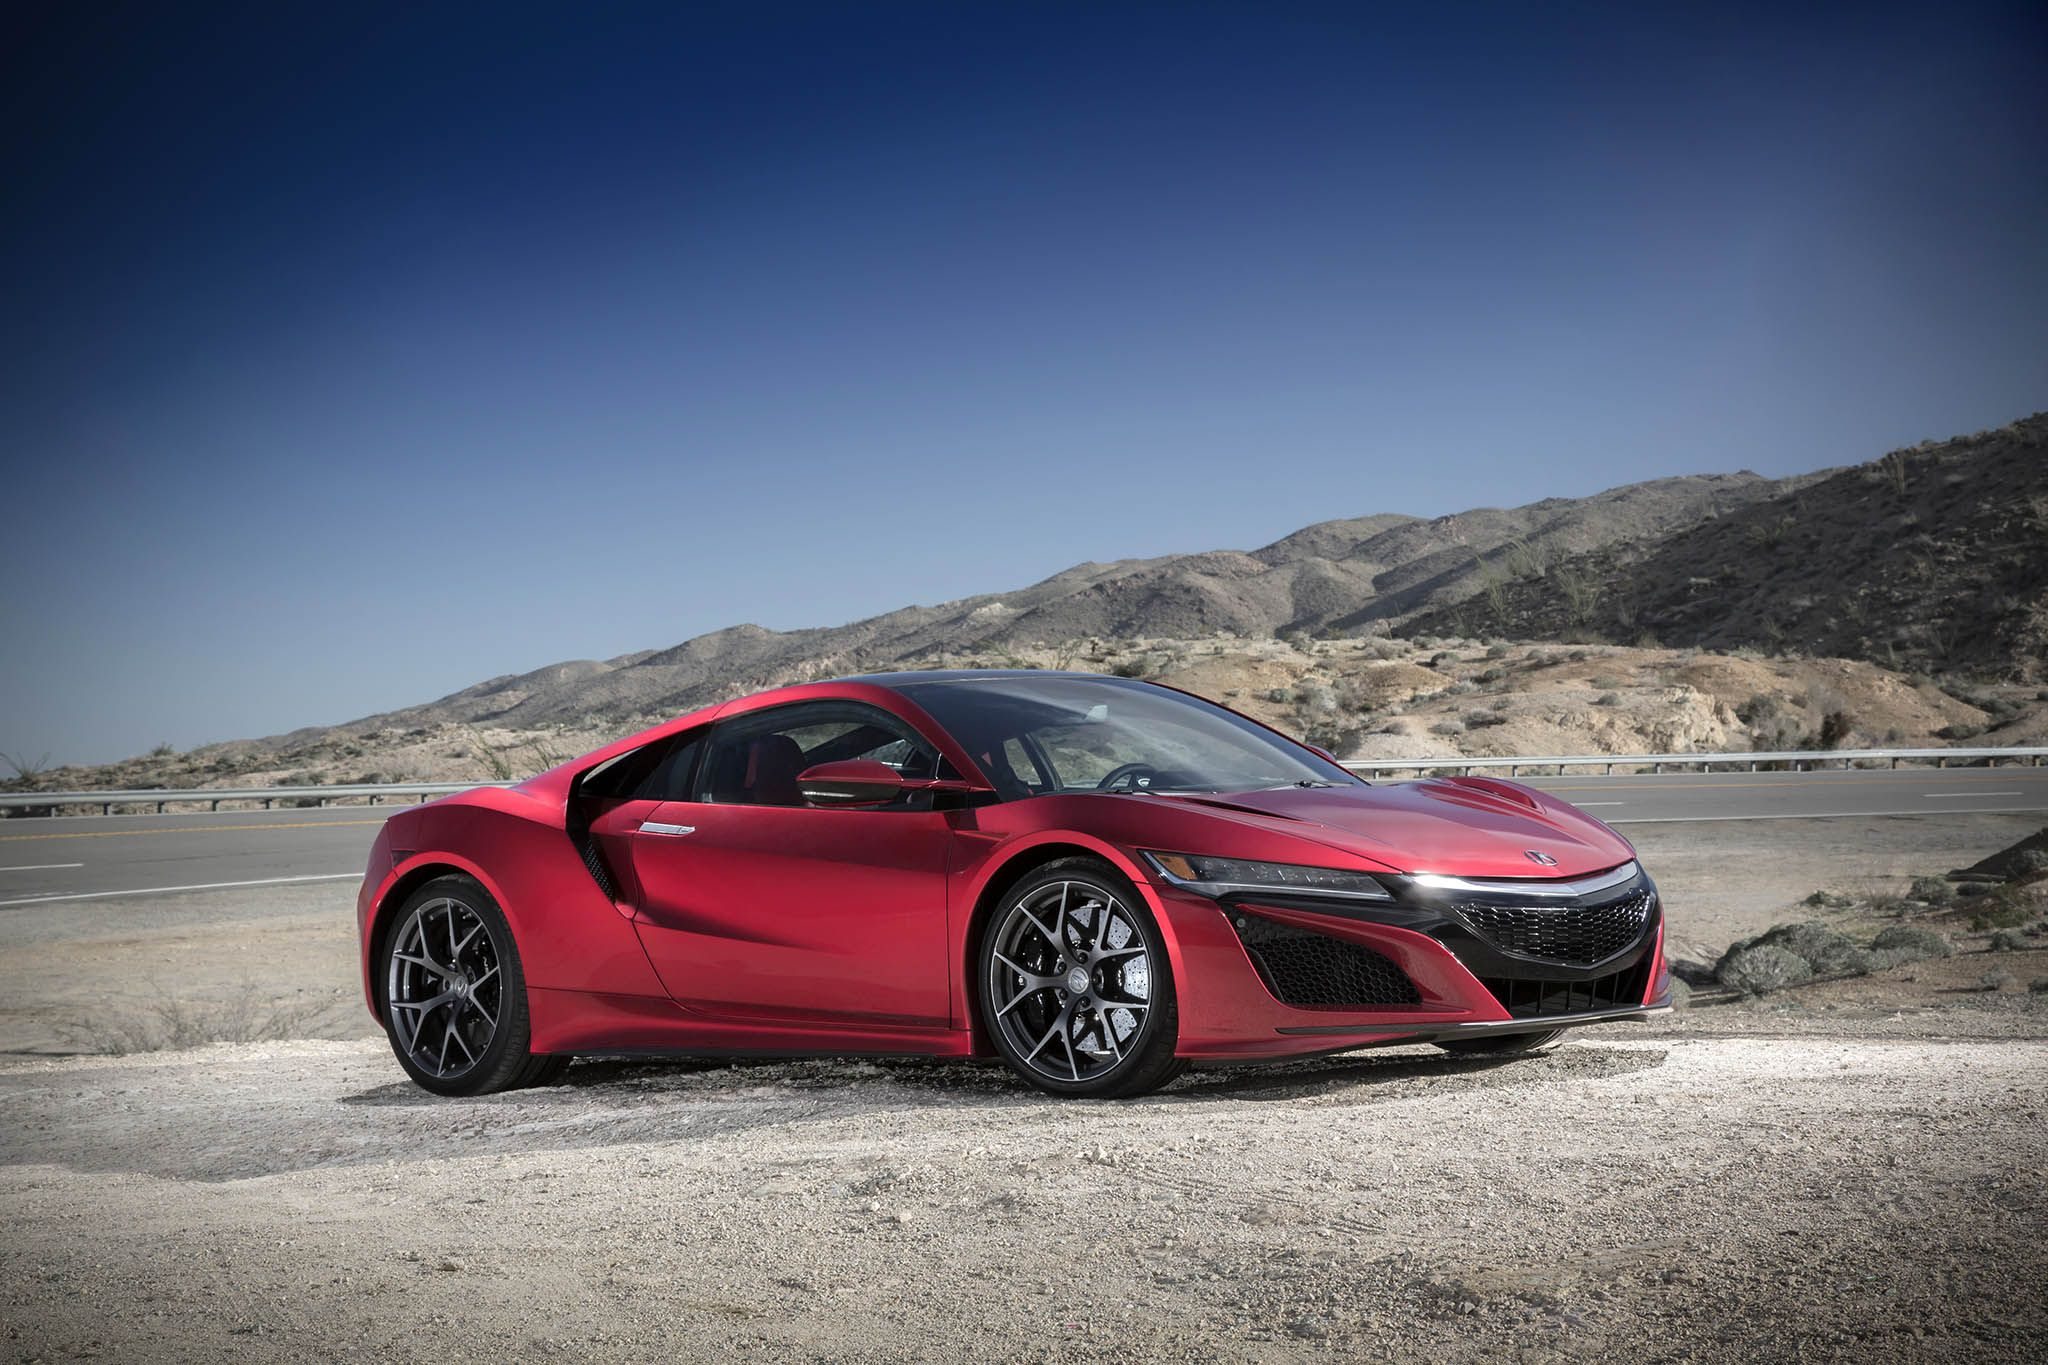 2017 acura nsx supercars sportscars exoticcars acuransx cool red